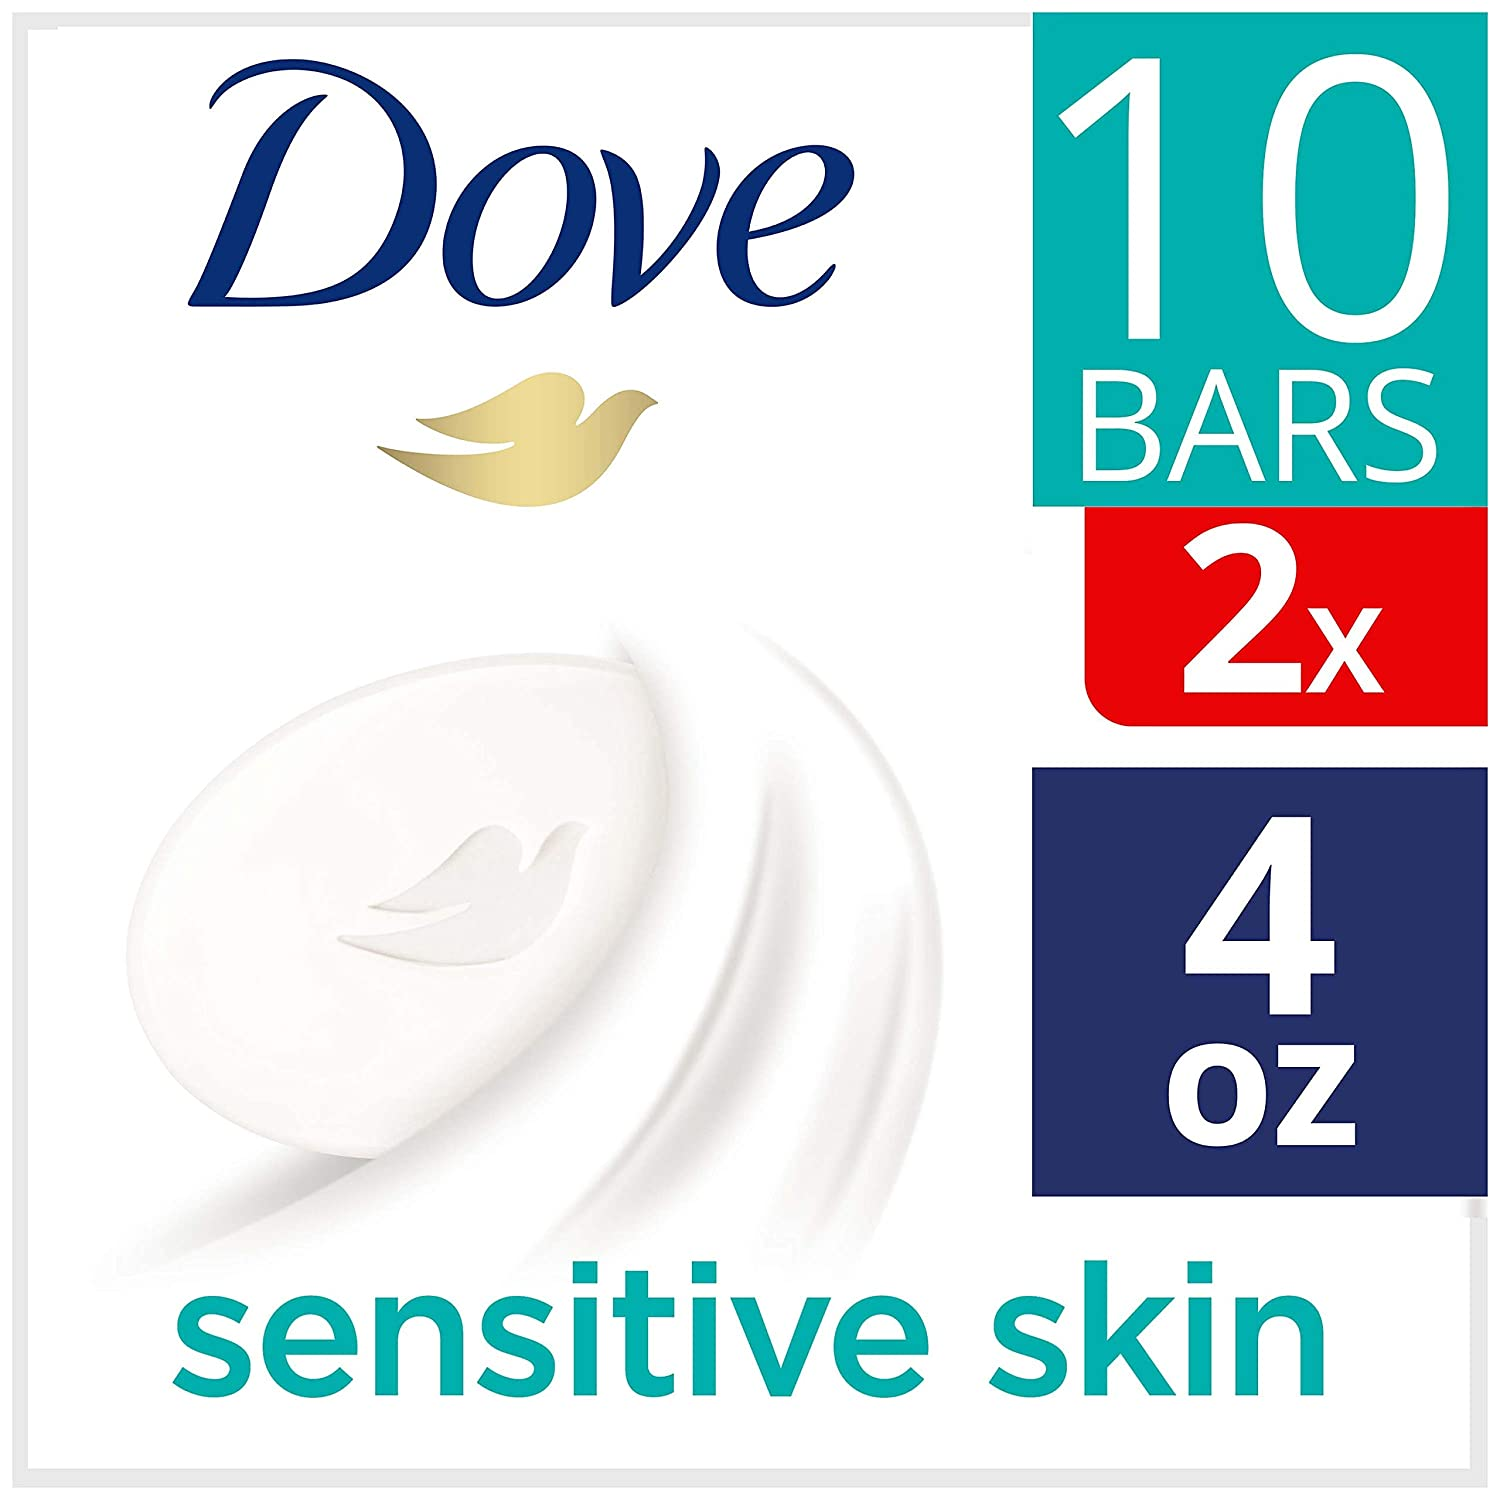 Dove Beauty Bar For Softer Skin Sensitive Skin More Moisturizing Than Bar Soap 4 oz 20 bars